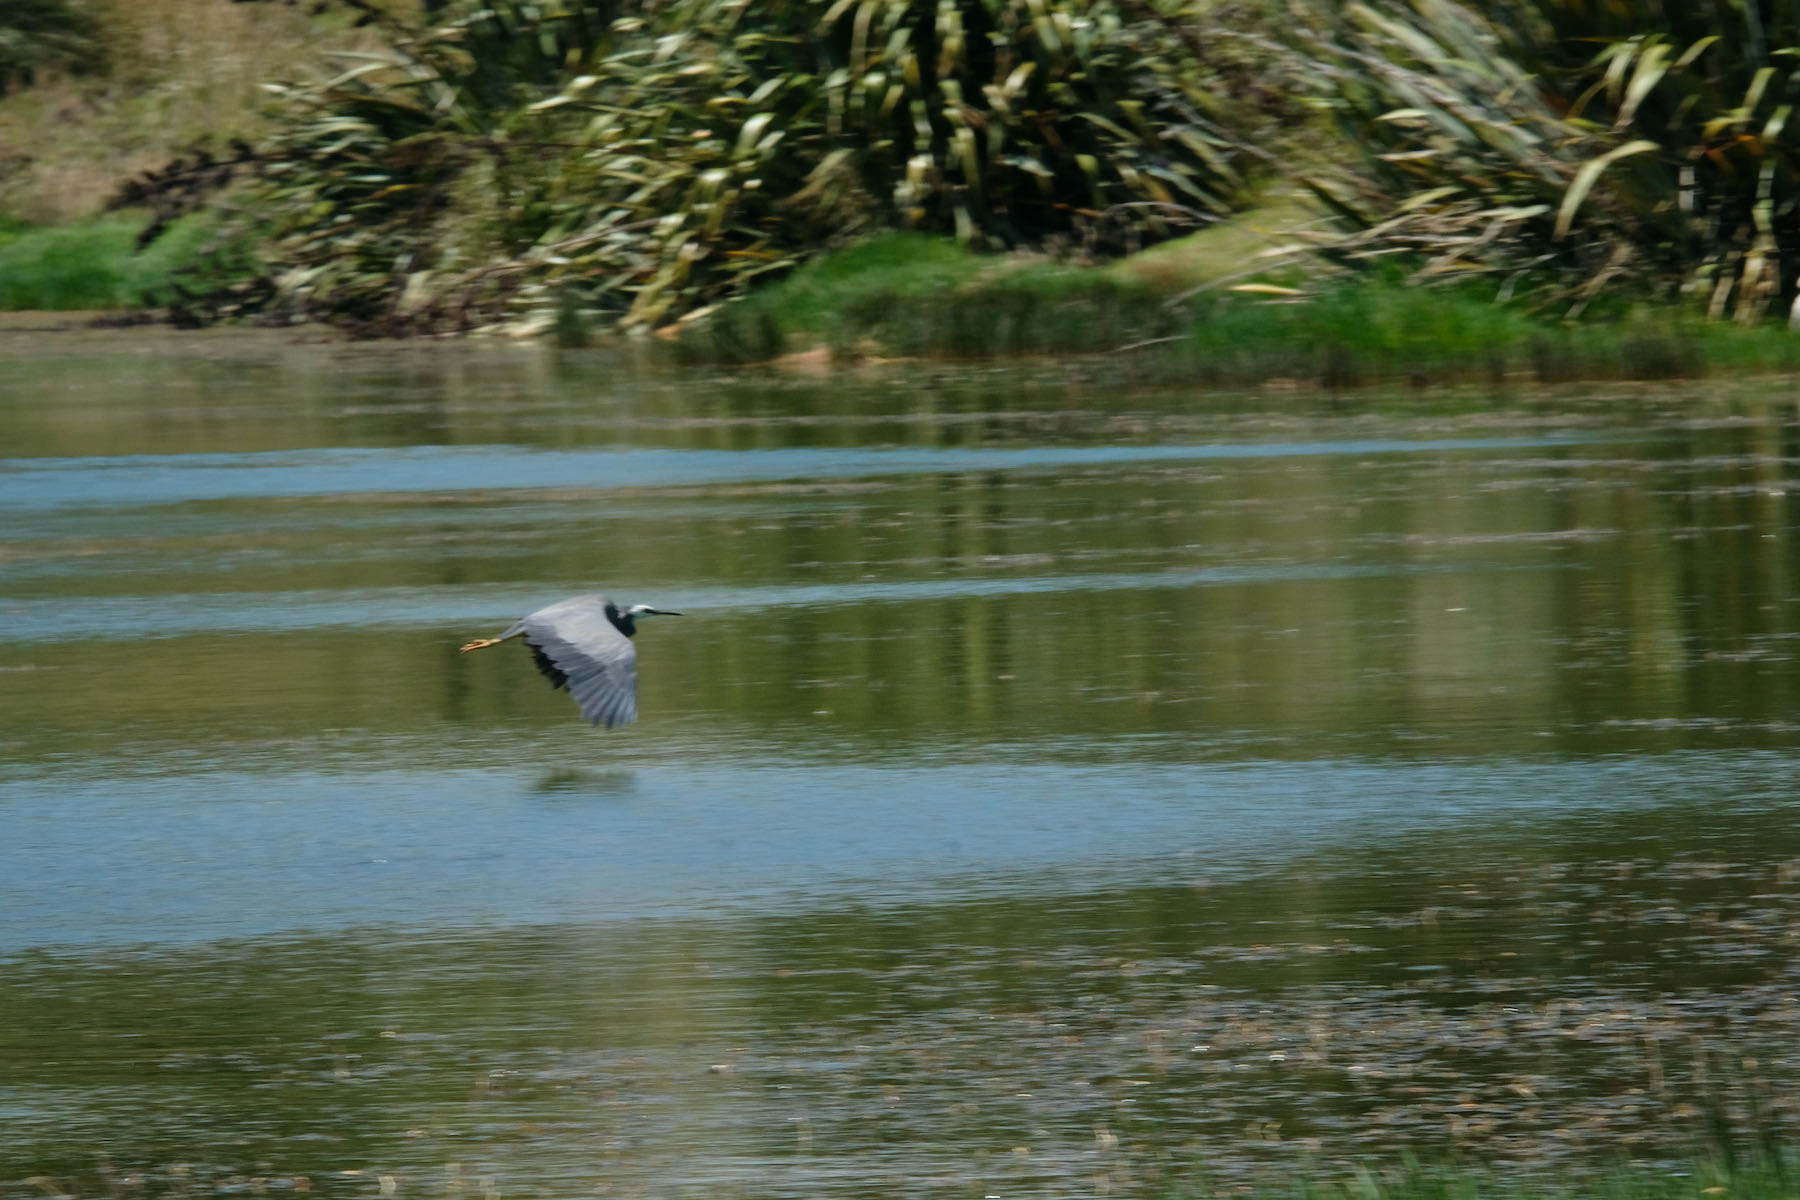 Bird flying over lake with wings on a downbeat, yellow feet behind.